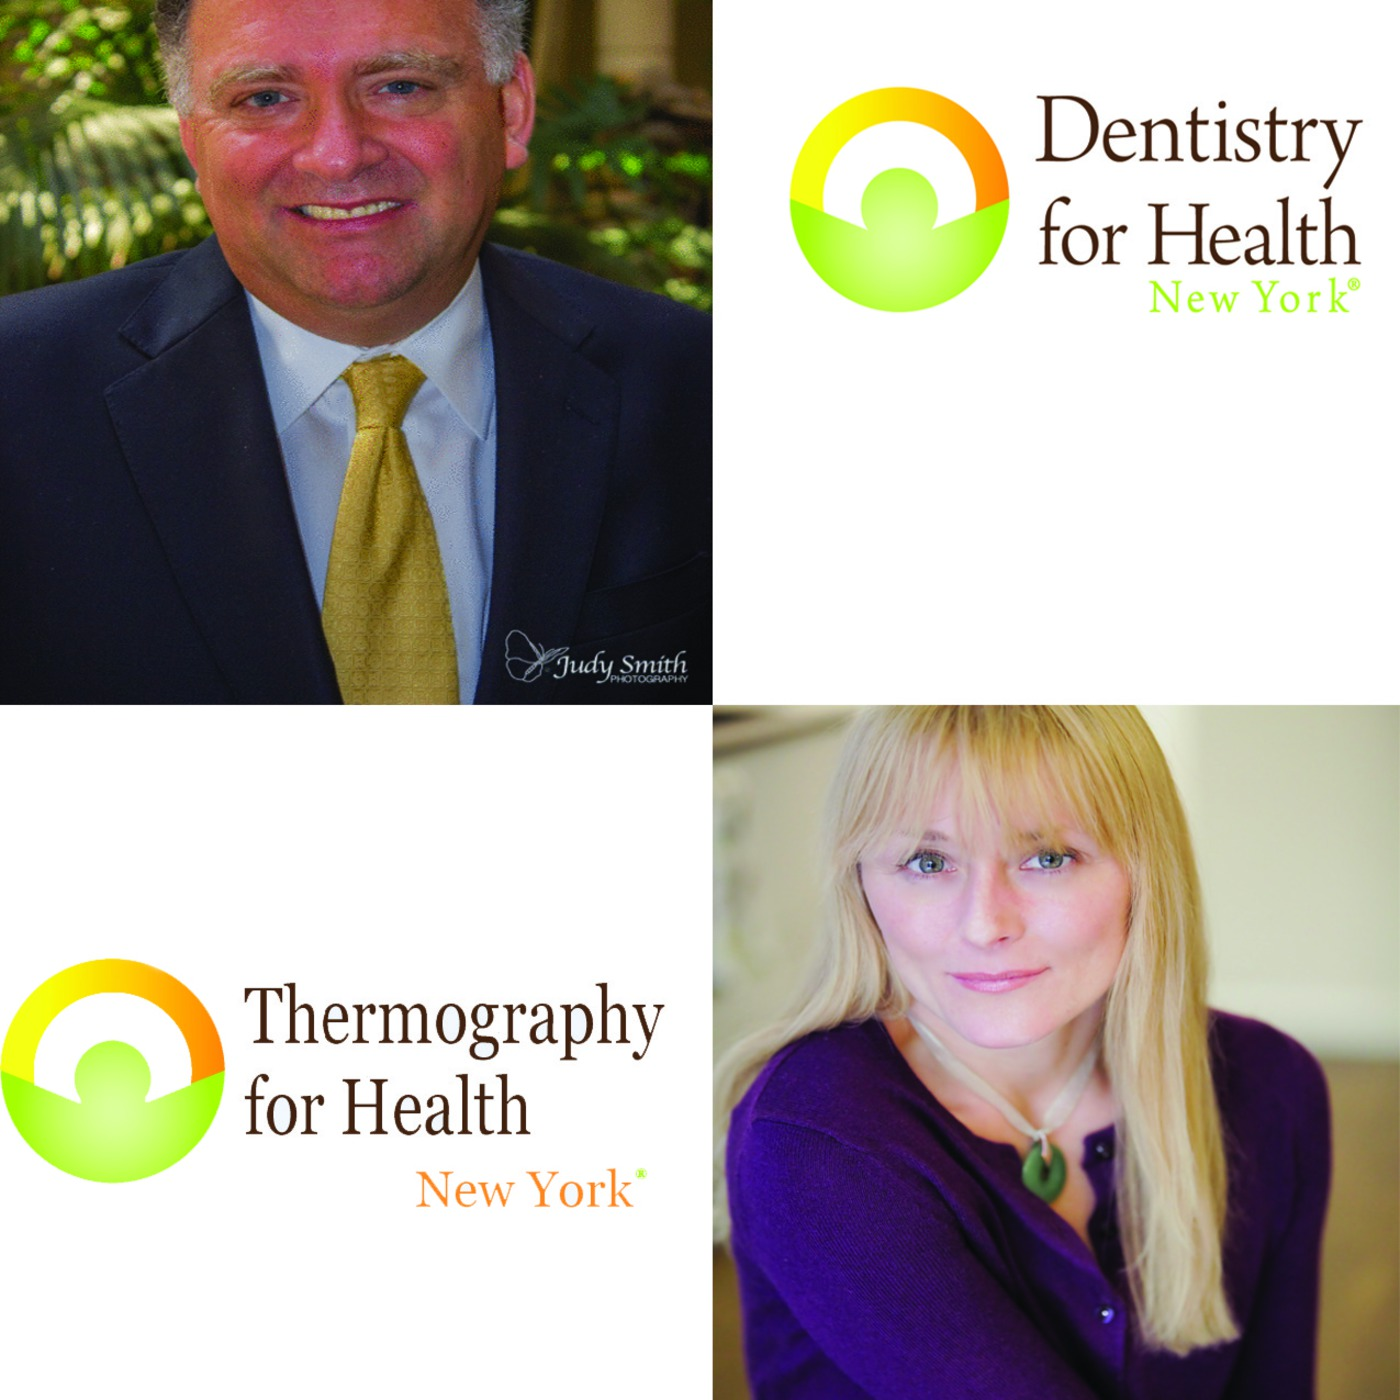 Dentistry For Health New York